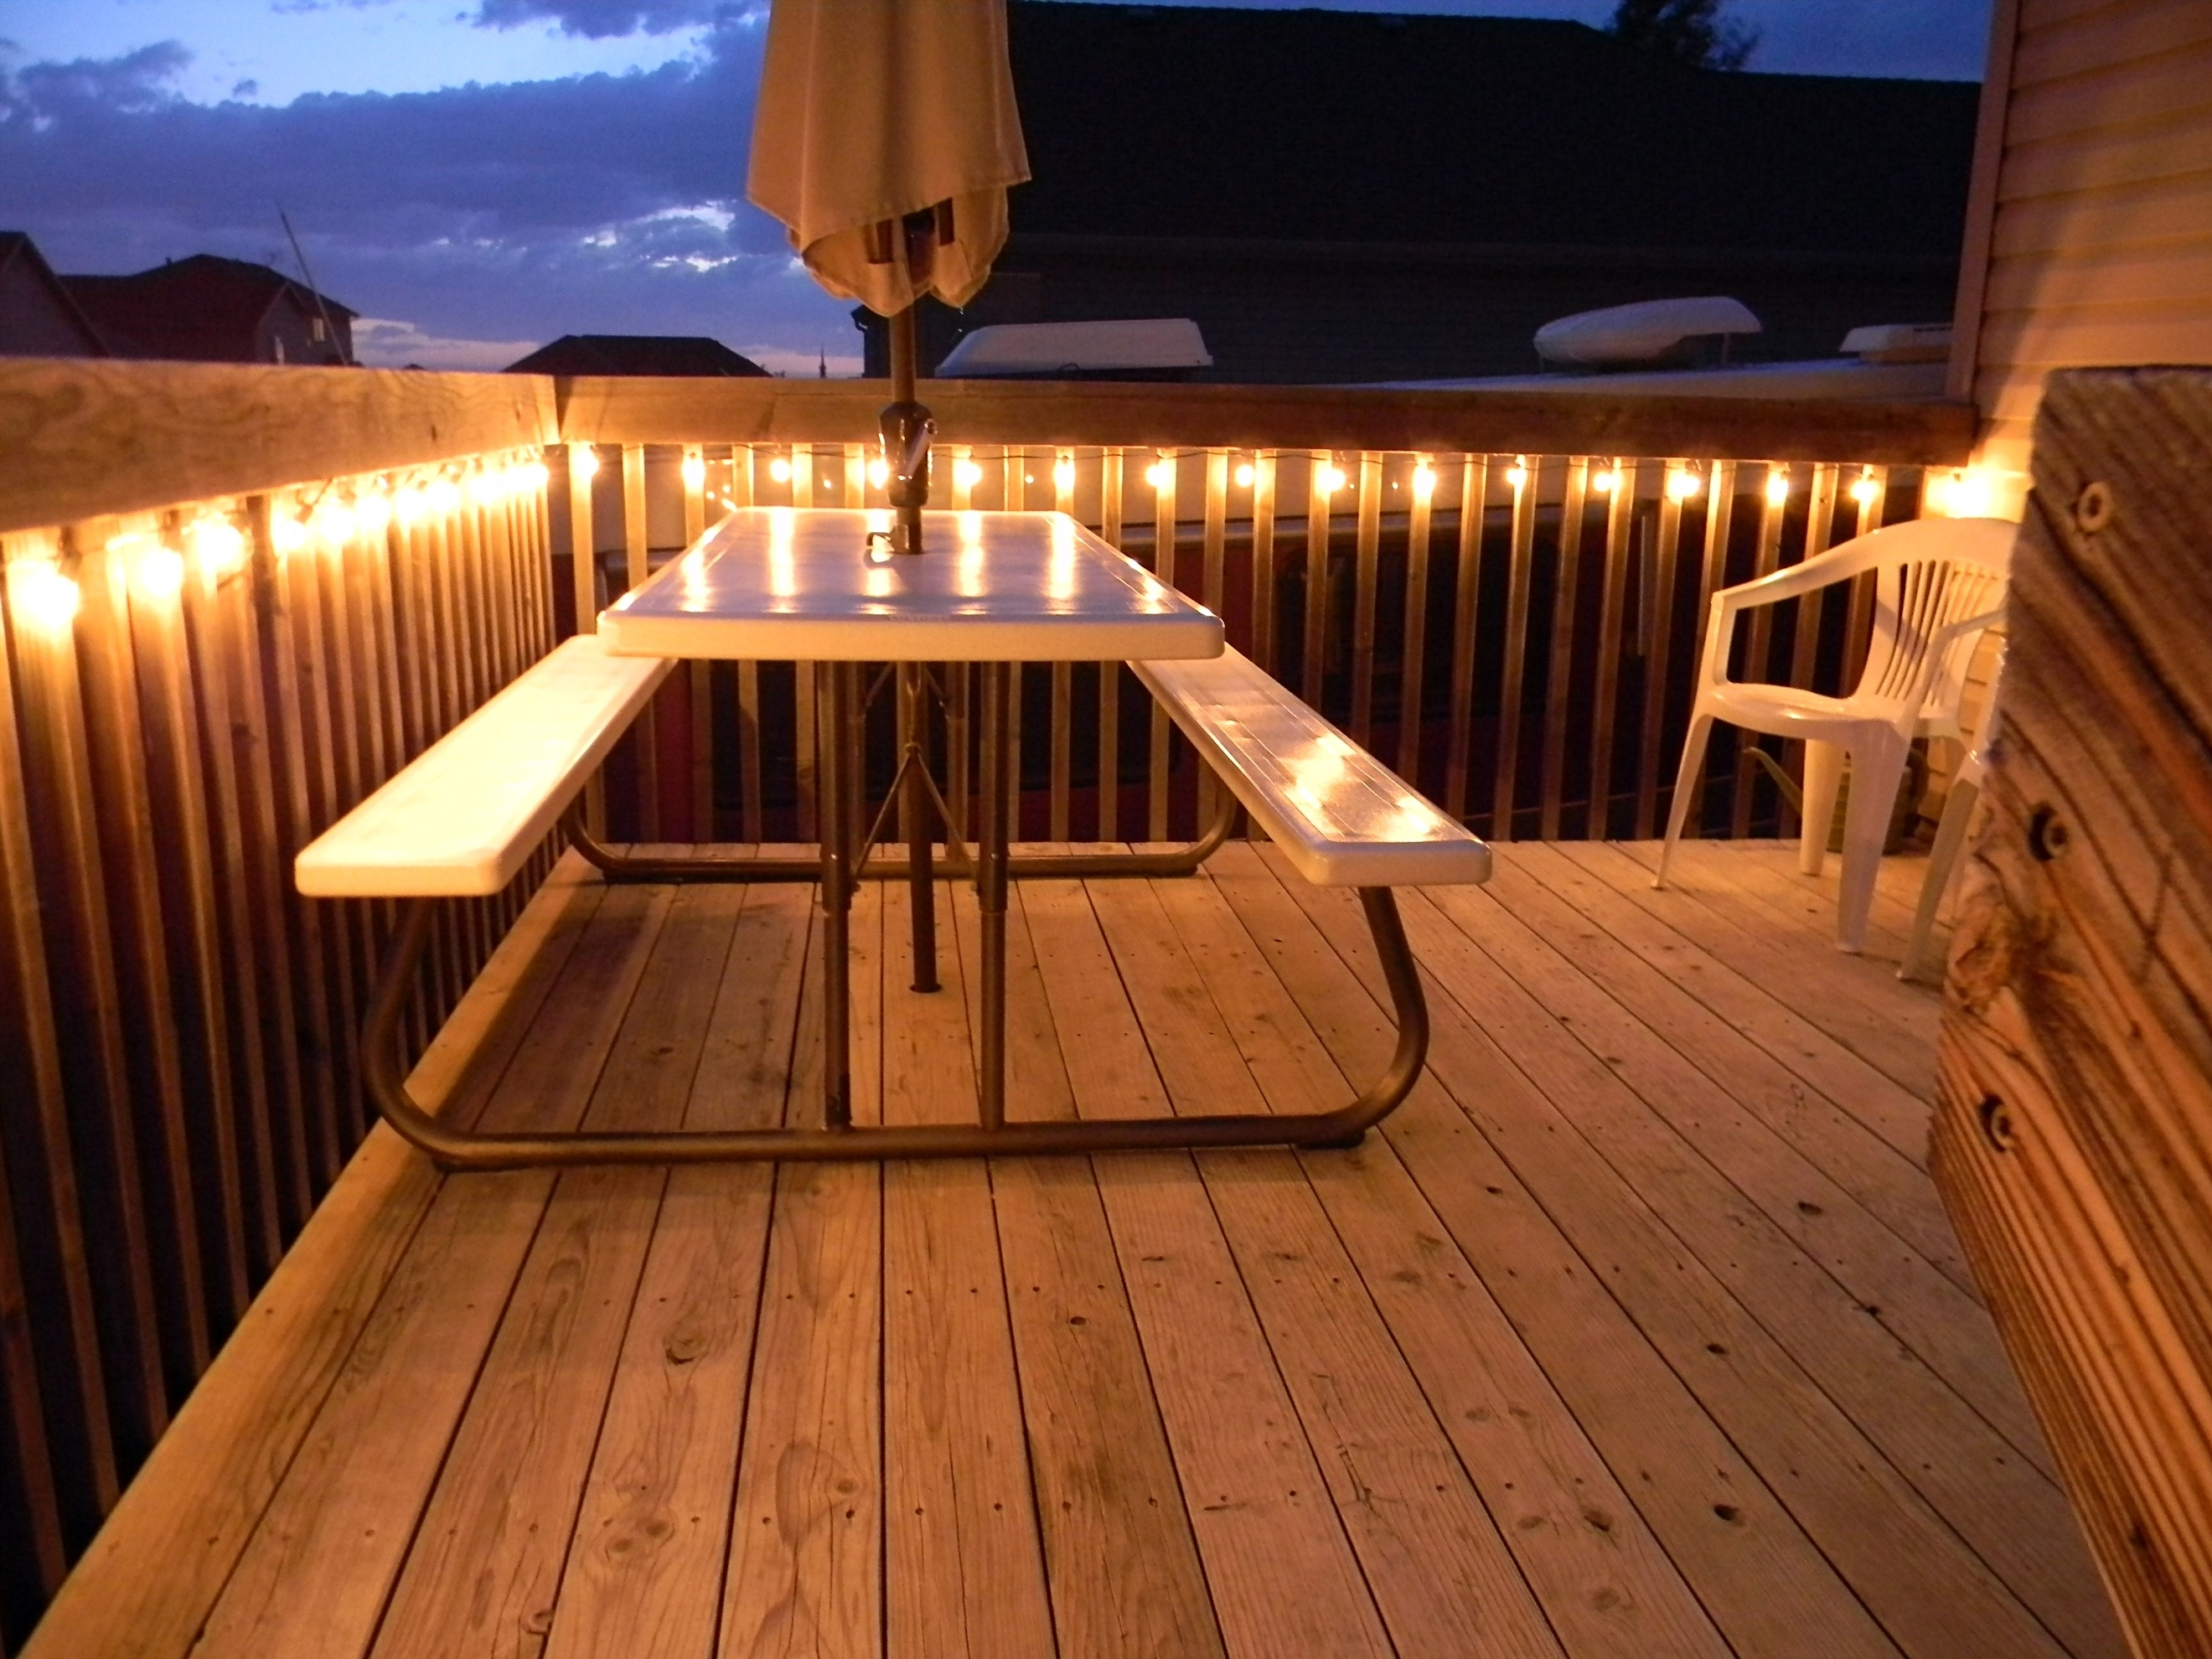 Garden Ideas : Low Voltage Deck Lighting Ideas Some Tips To Get The Within Modern Low Voltage Deck Lighting (View 3 of 15)